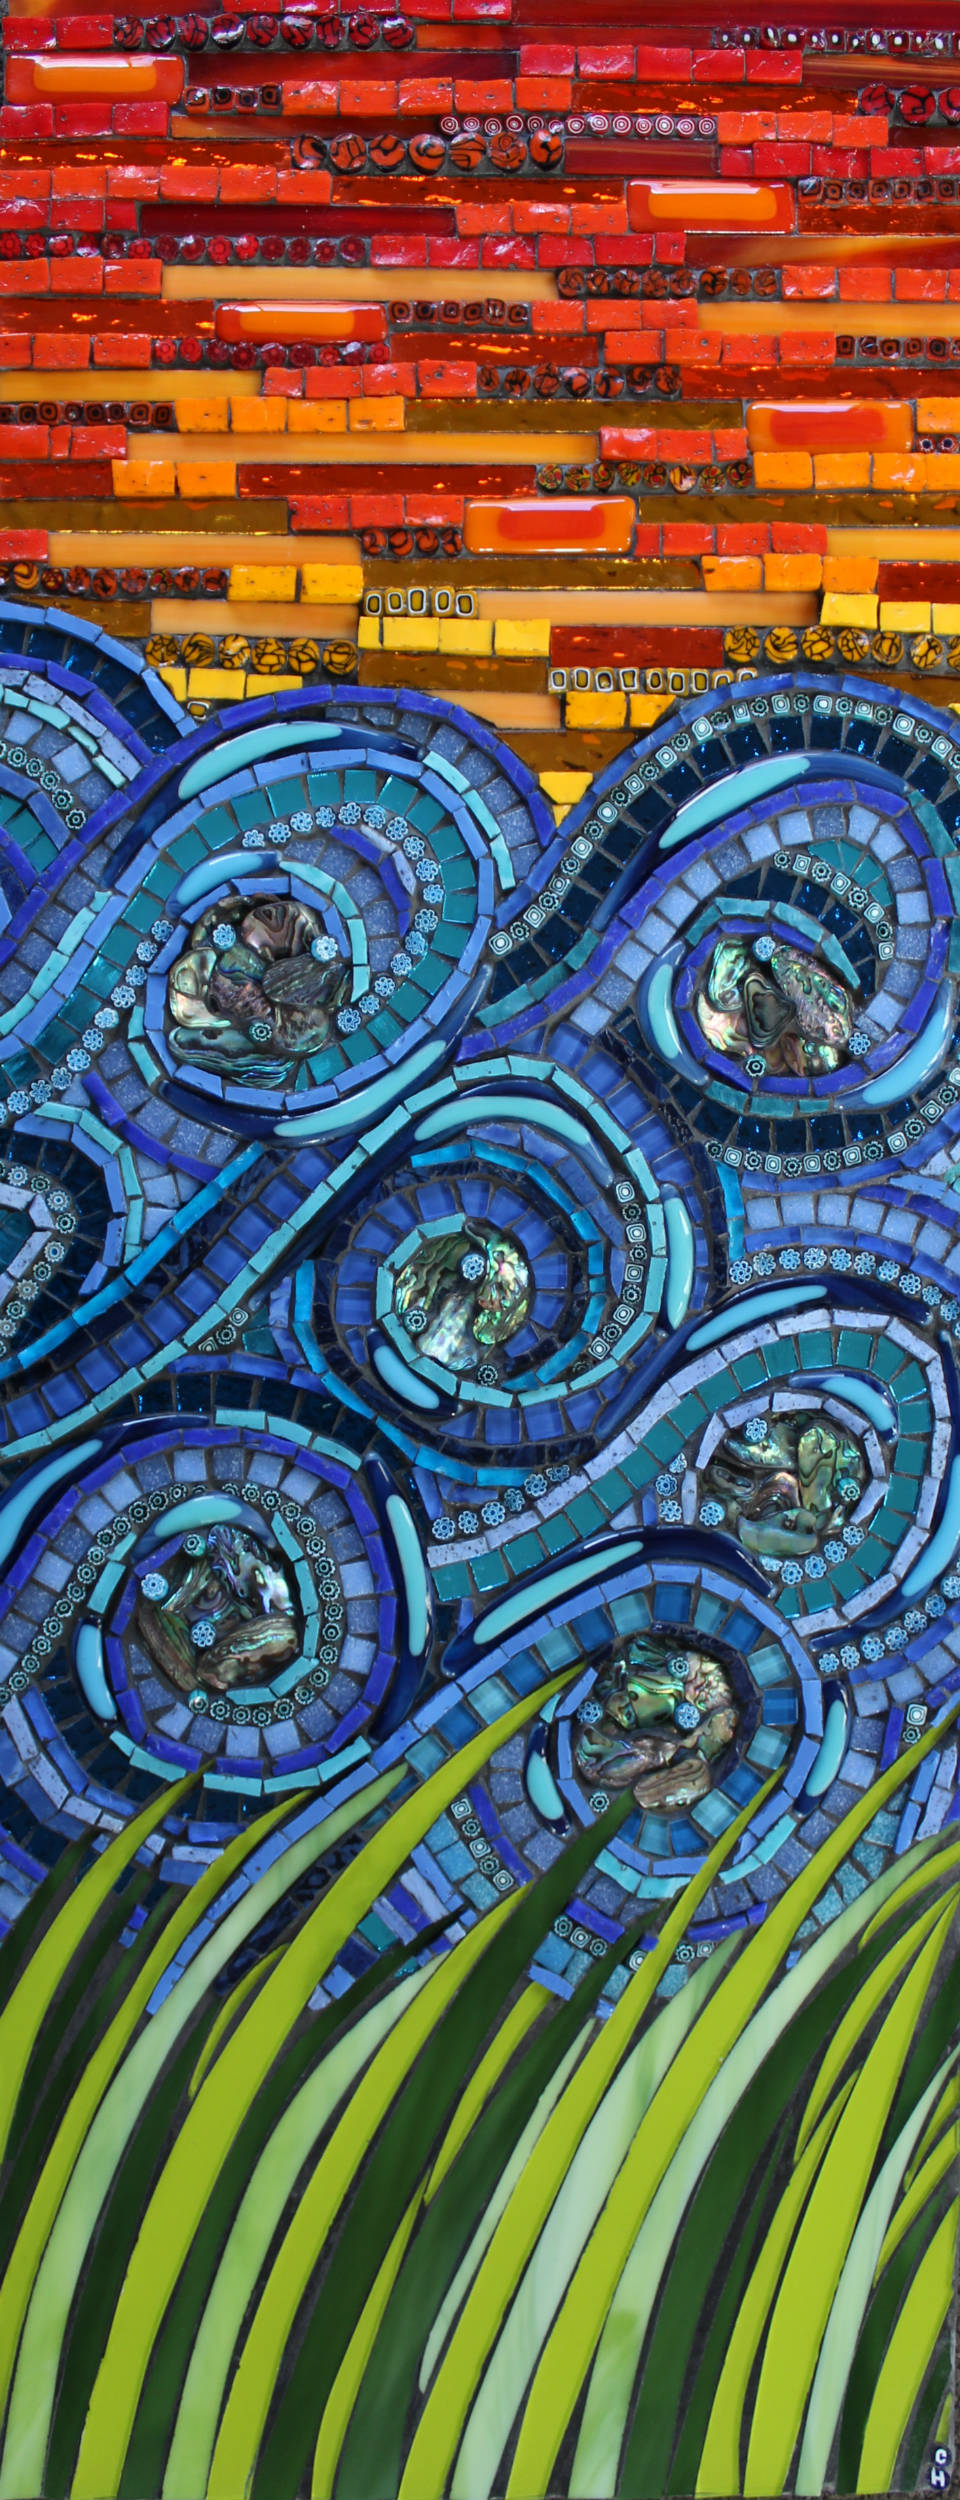 Elements #1 (Stained Glass, Smalti, Millefiori, Paua Shell,Mirror Glass, Glass Fusions)